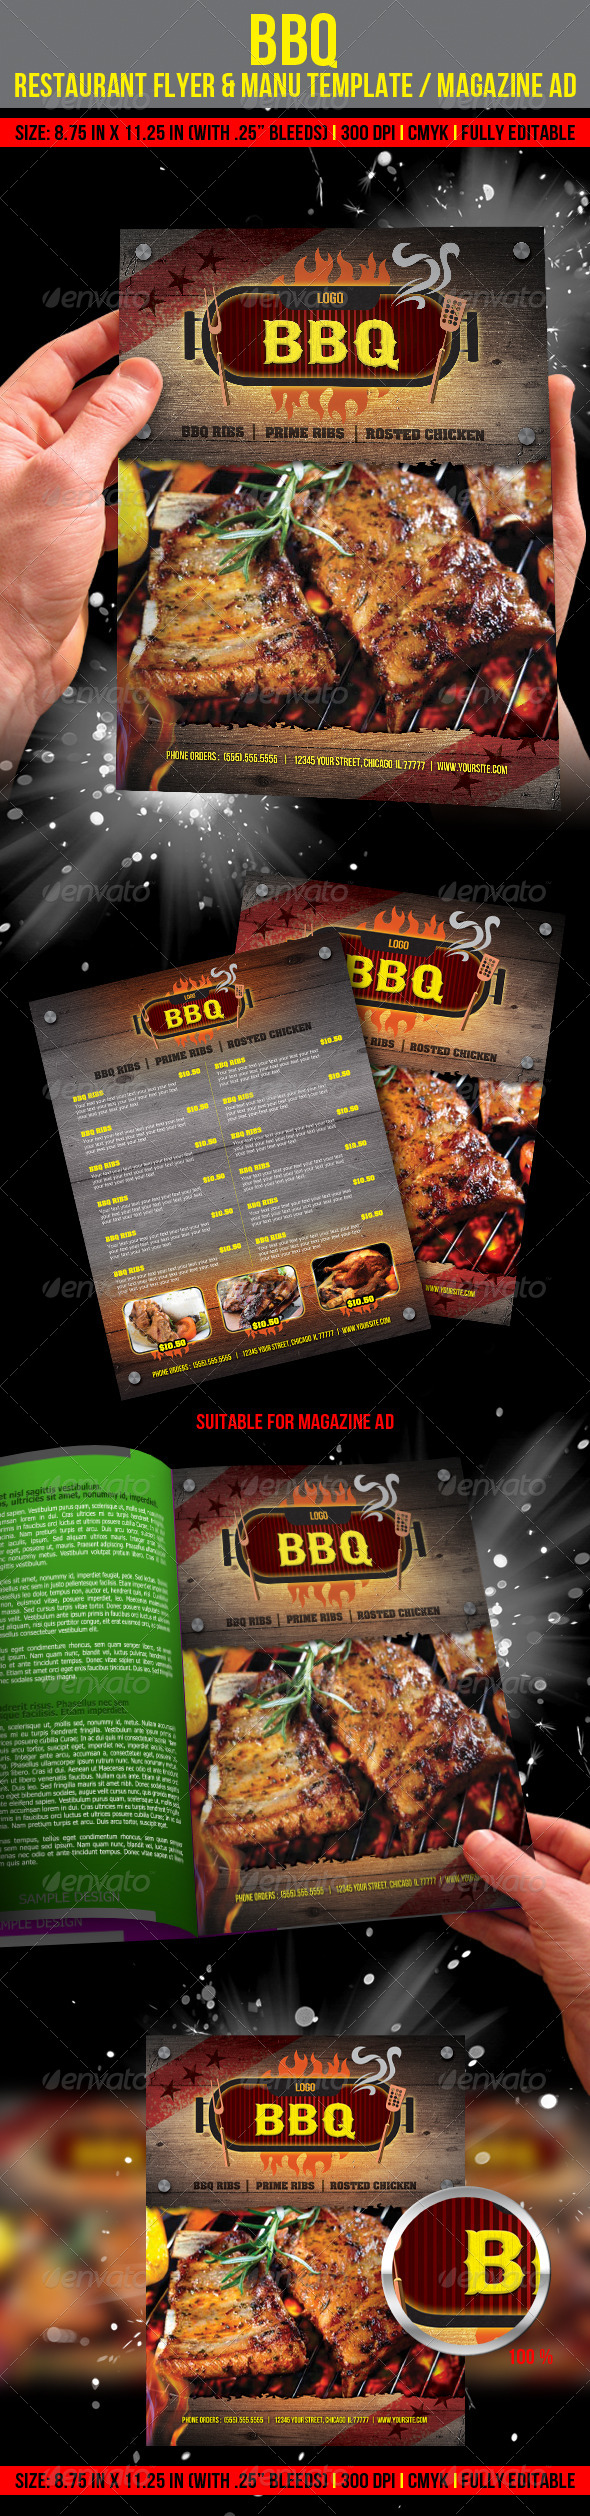 GraphicRiver Barbecue Restaurant Flyer & Manu Template Magazin 5250259